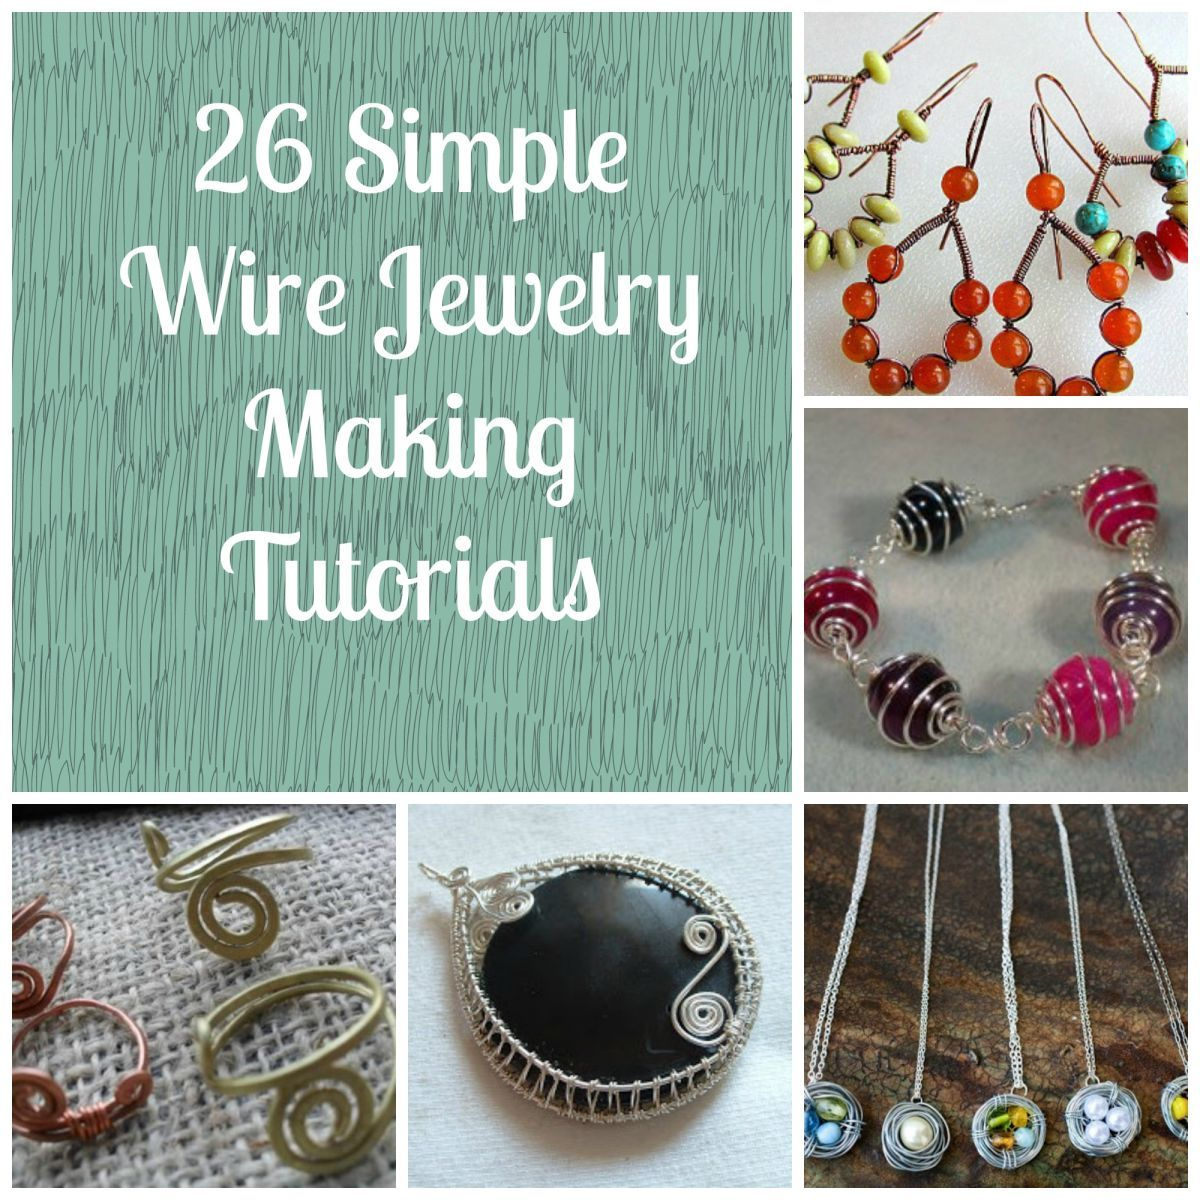 54 Simple Wire Jewelry Making Tutorials | Crochet wire jewelry ...